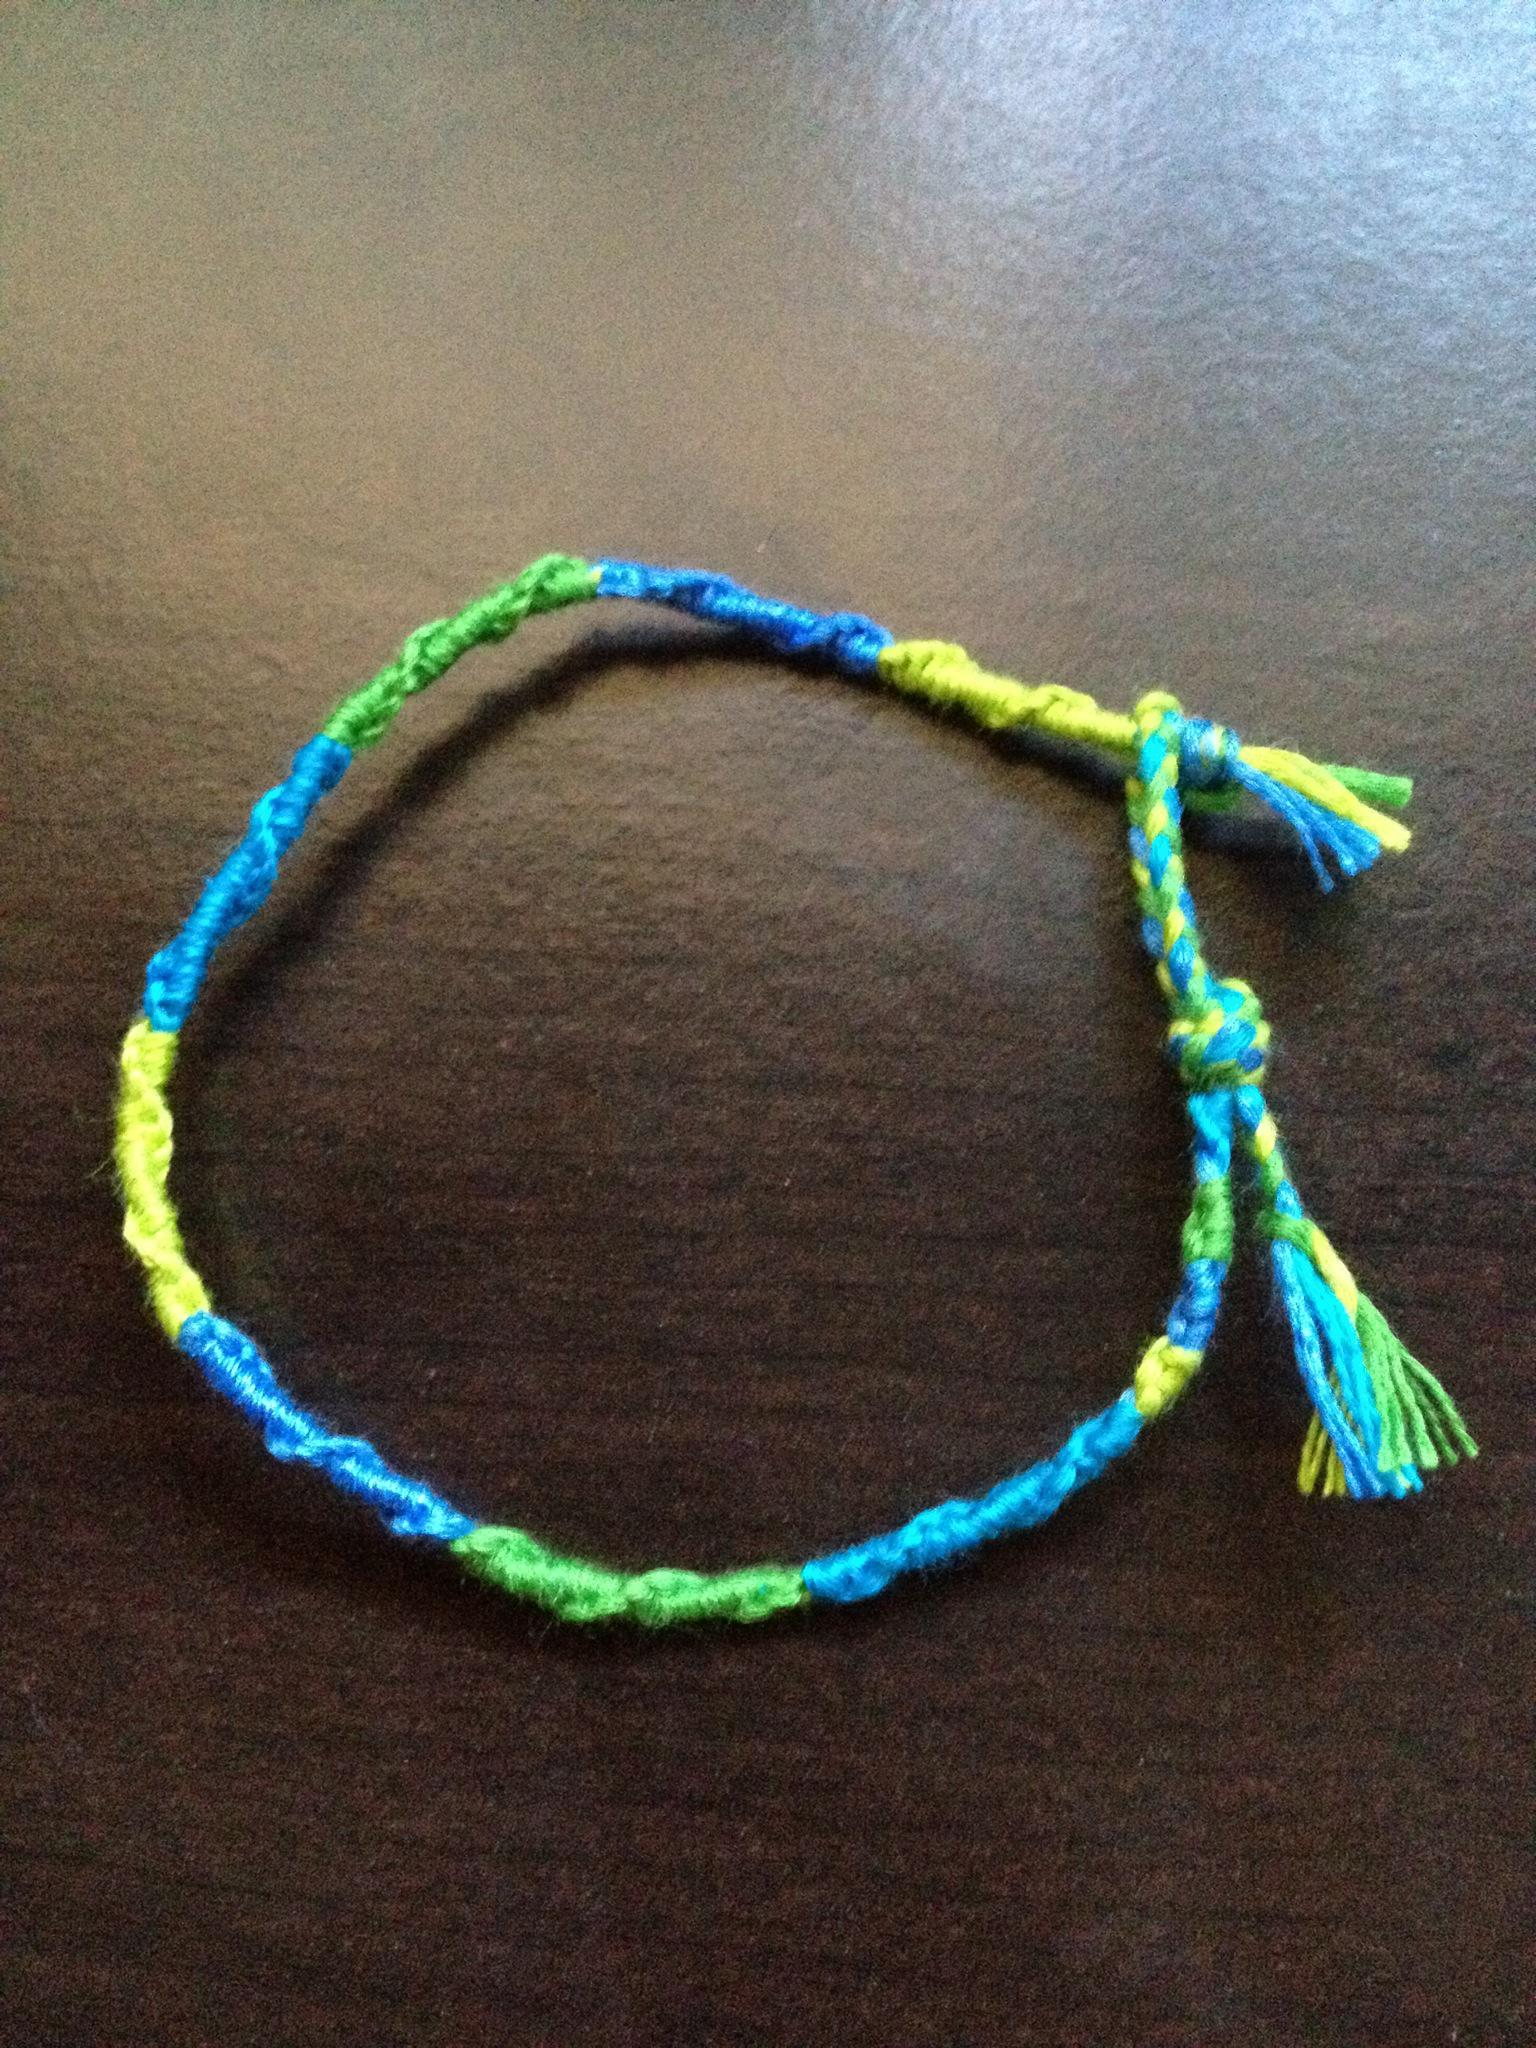 How To Make The Ends Of A Friendship Bracelet B C Guides